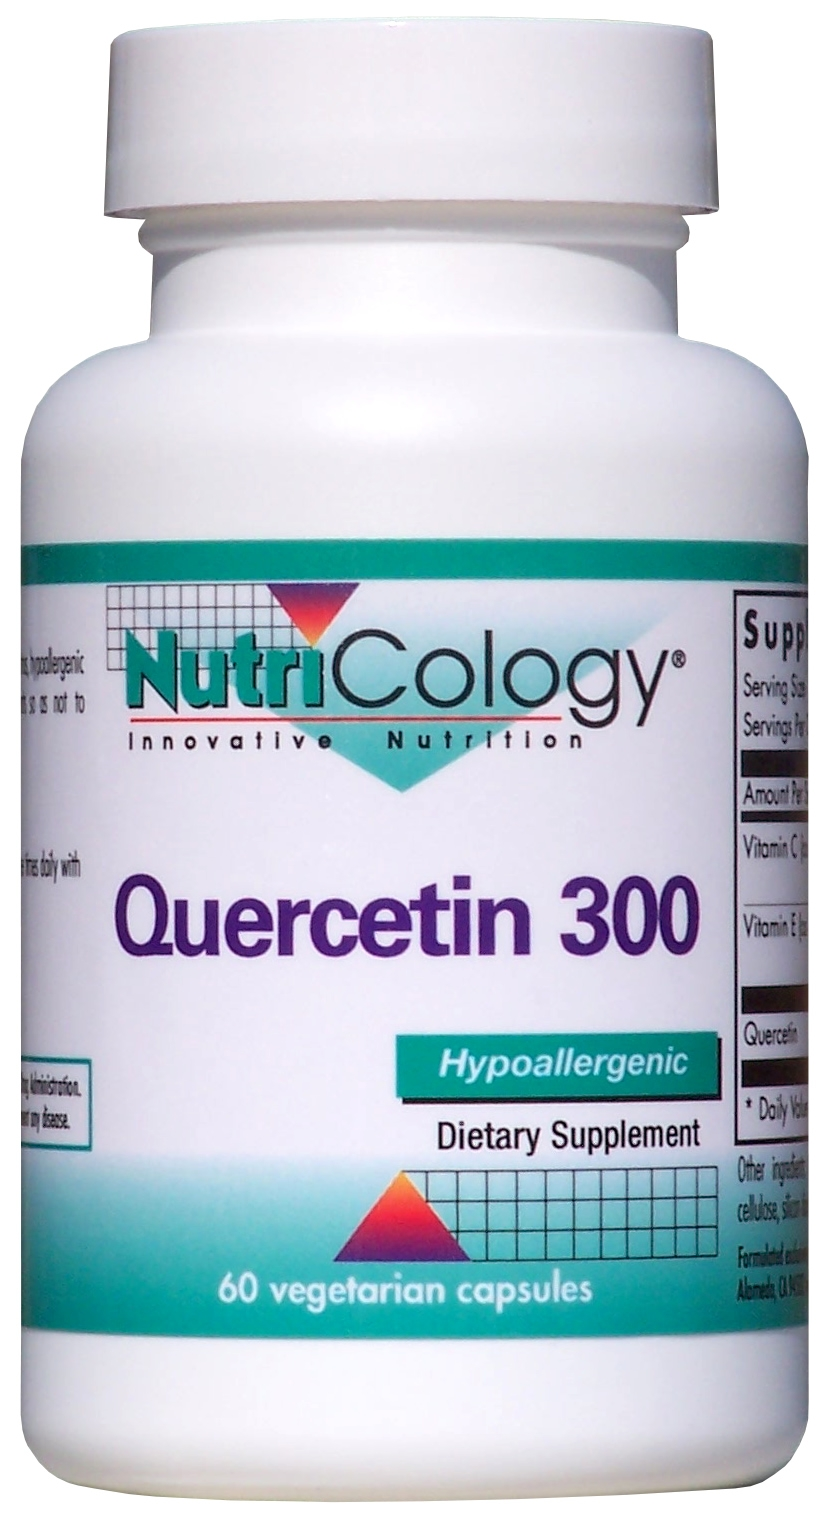 Quercetin 300 60 Vegetarian Caps by Nutricology